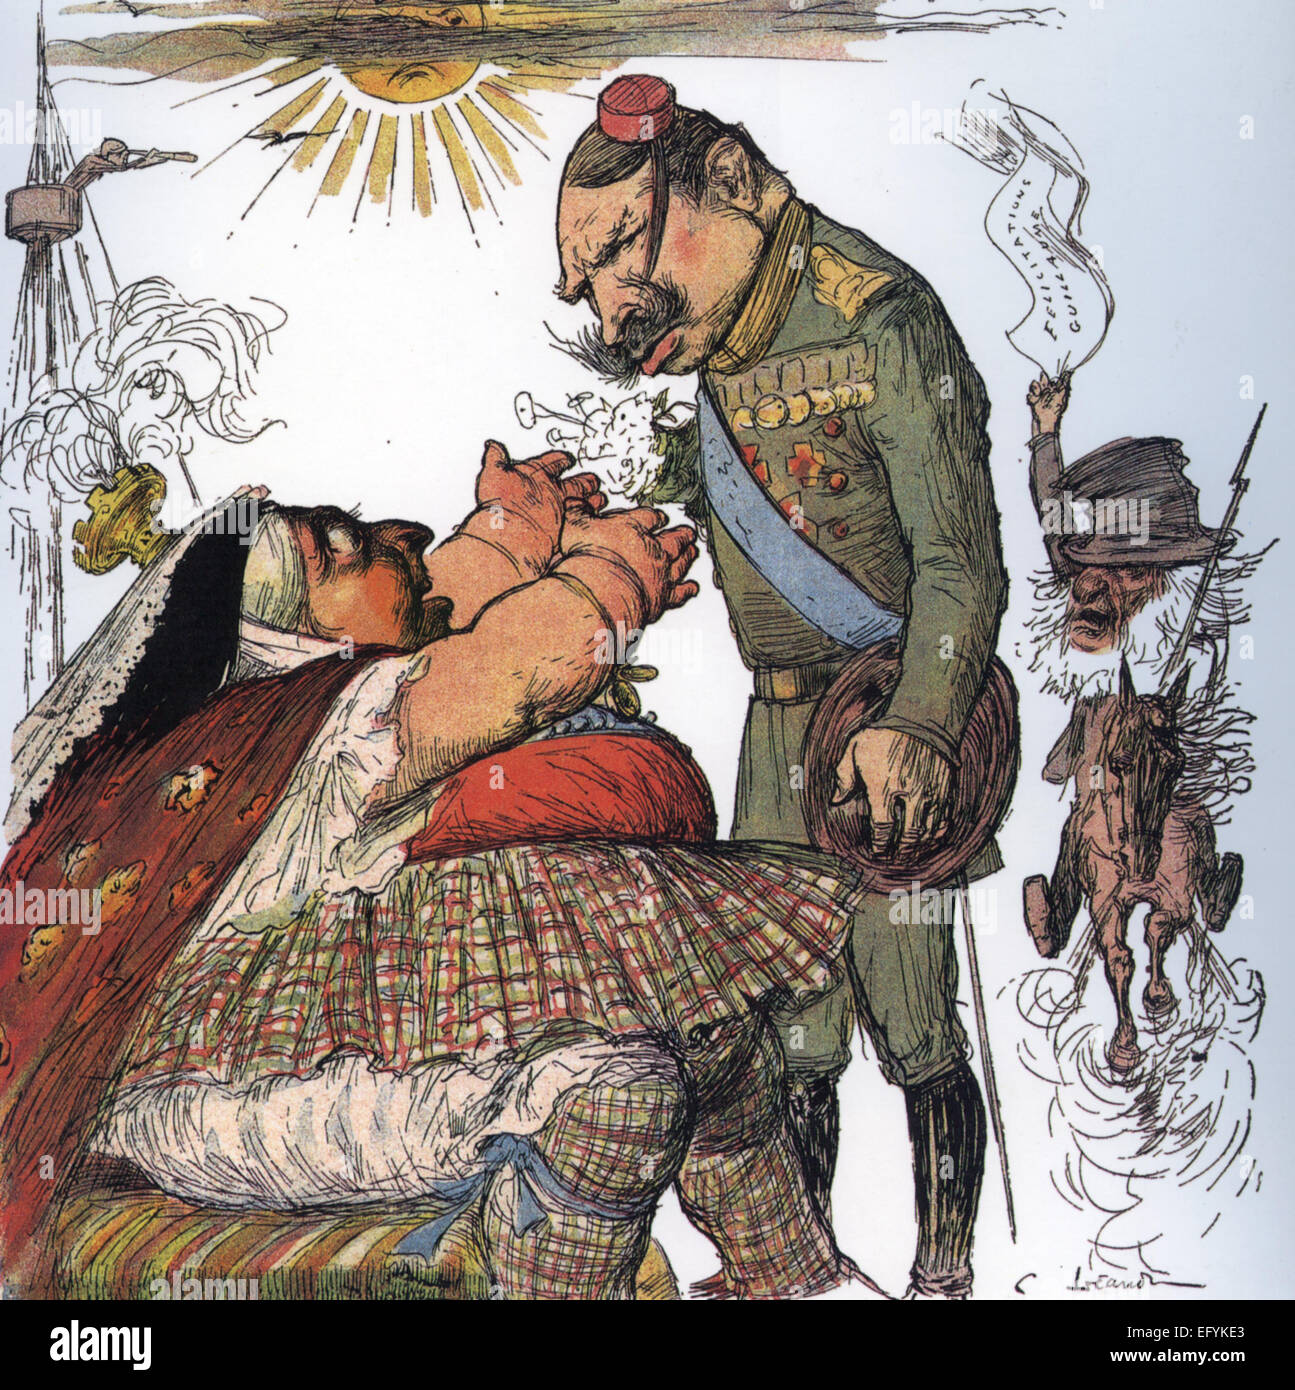 BOER WAR Cartoon on the cover of French satirical magazine Le Rire on 2 December 1899. Kaiser Wilhelm slyly meets - Stock Image